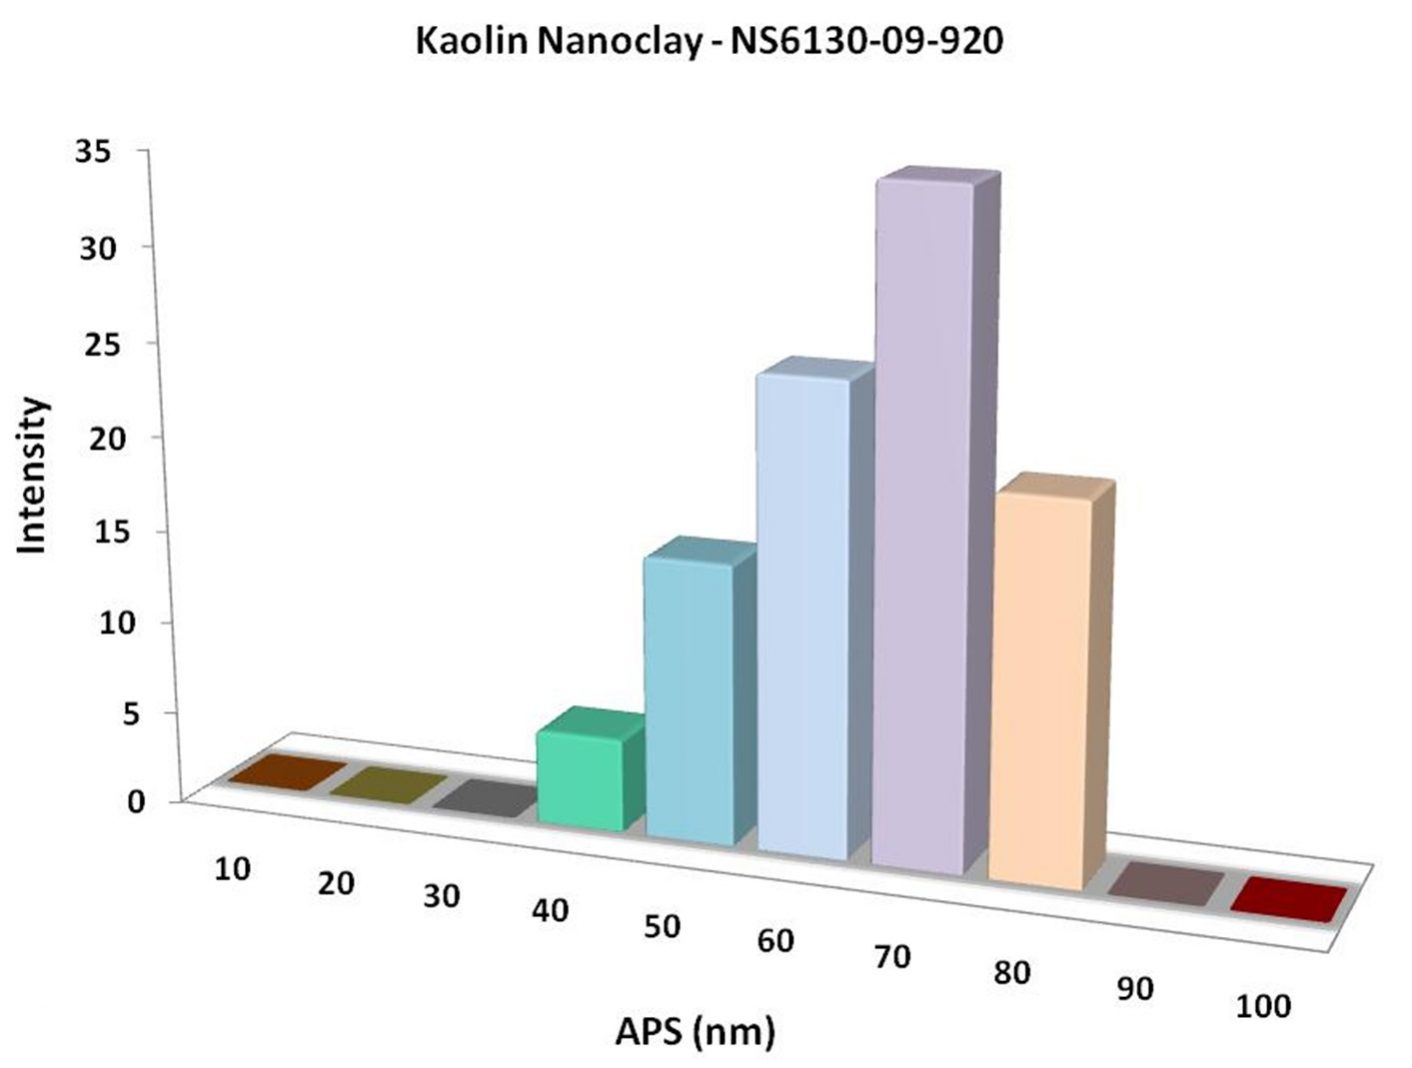 Particles Size Analysis - Kaolin Nanoclay